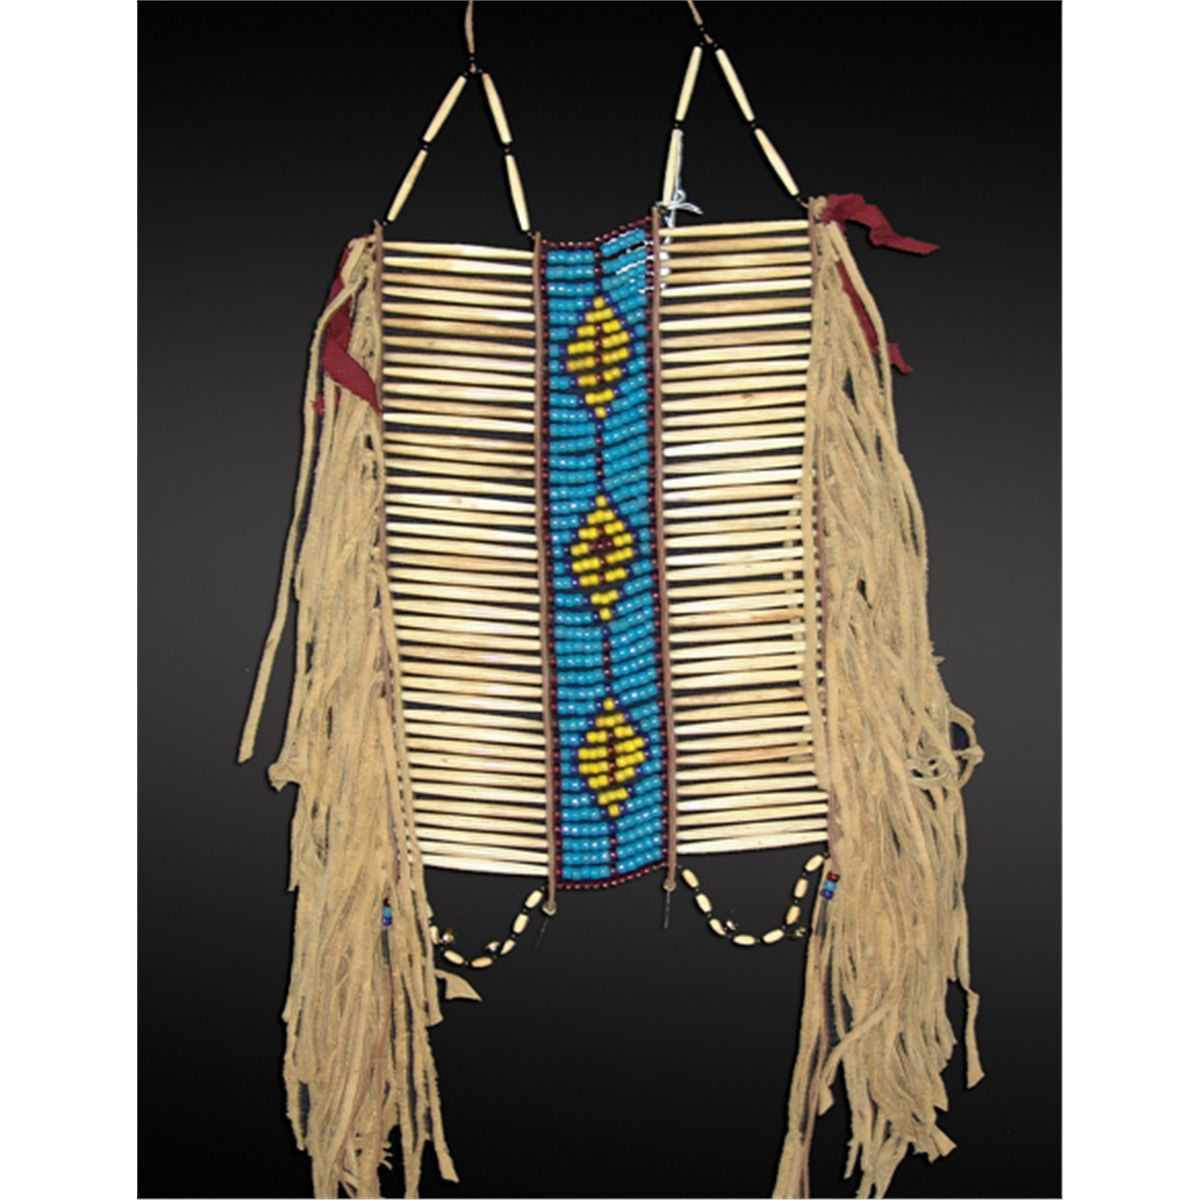 Cheyenne bone breastplate beaded pipe bags pinterest for Cheyenne tribe arts and crafts